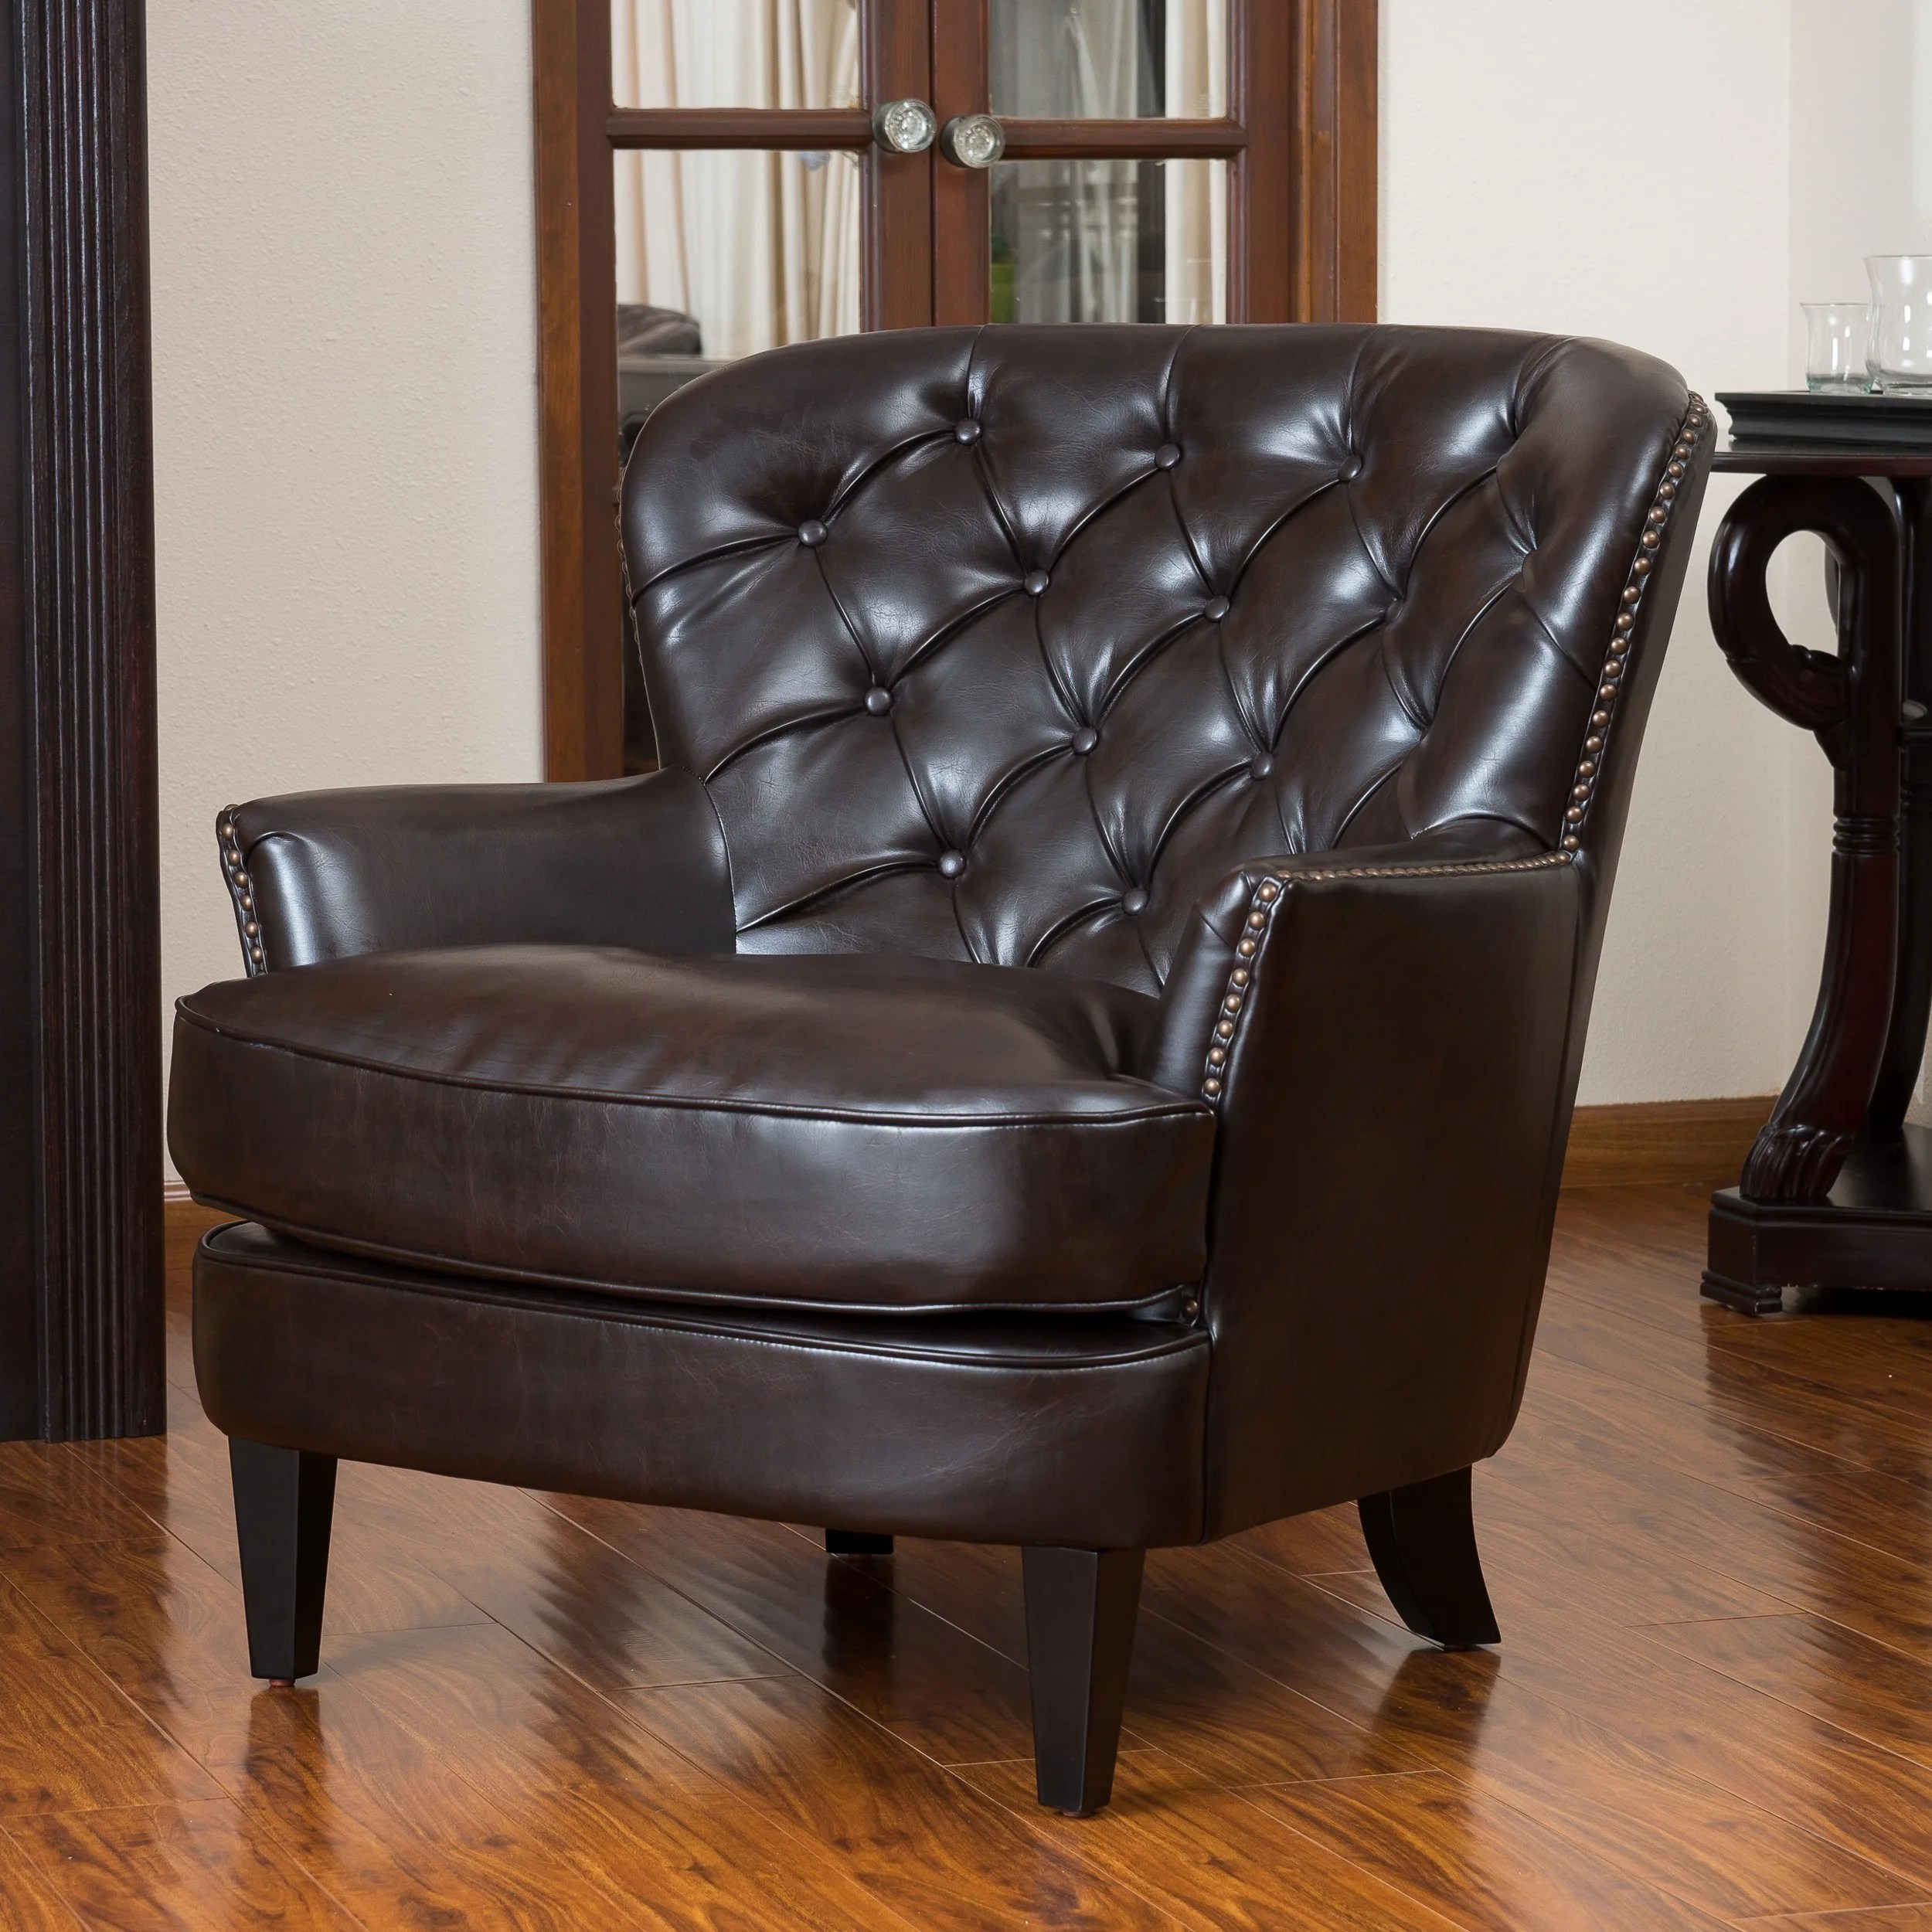 Oversized Brown Leather Chair Wide Seat Button Tufted Sofa